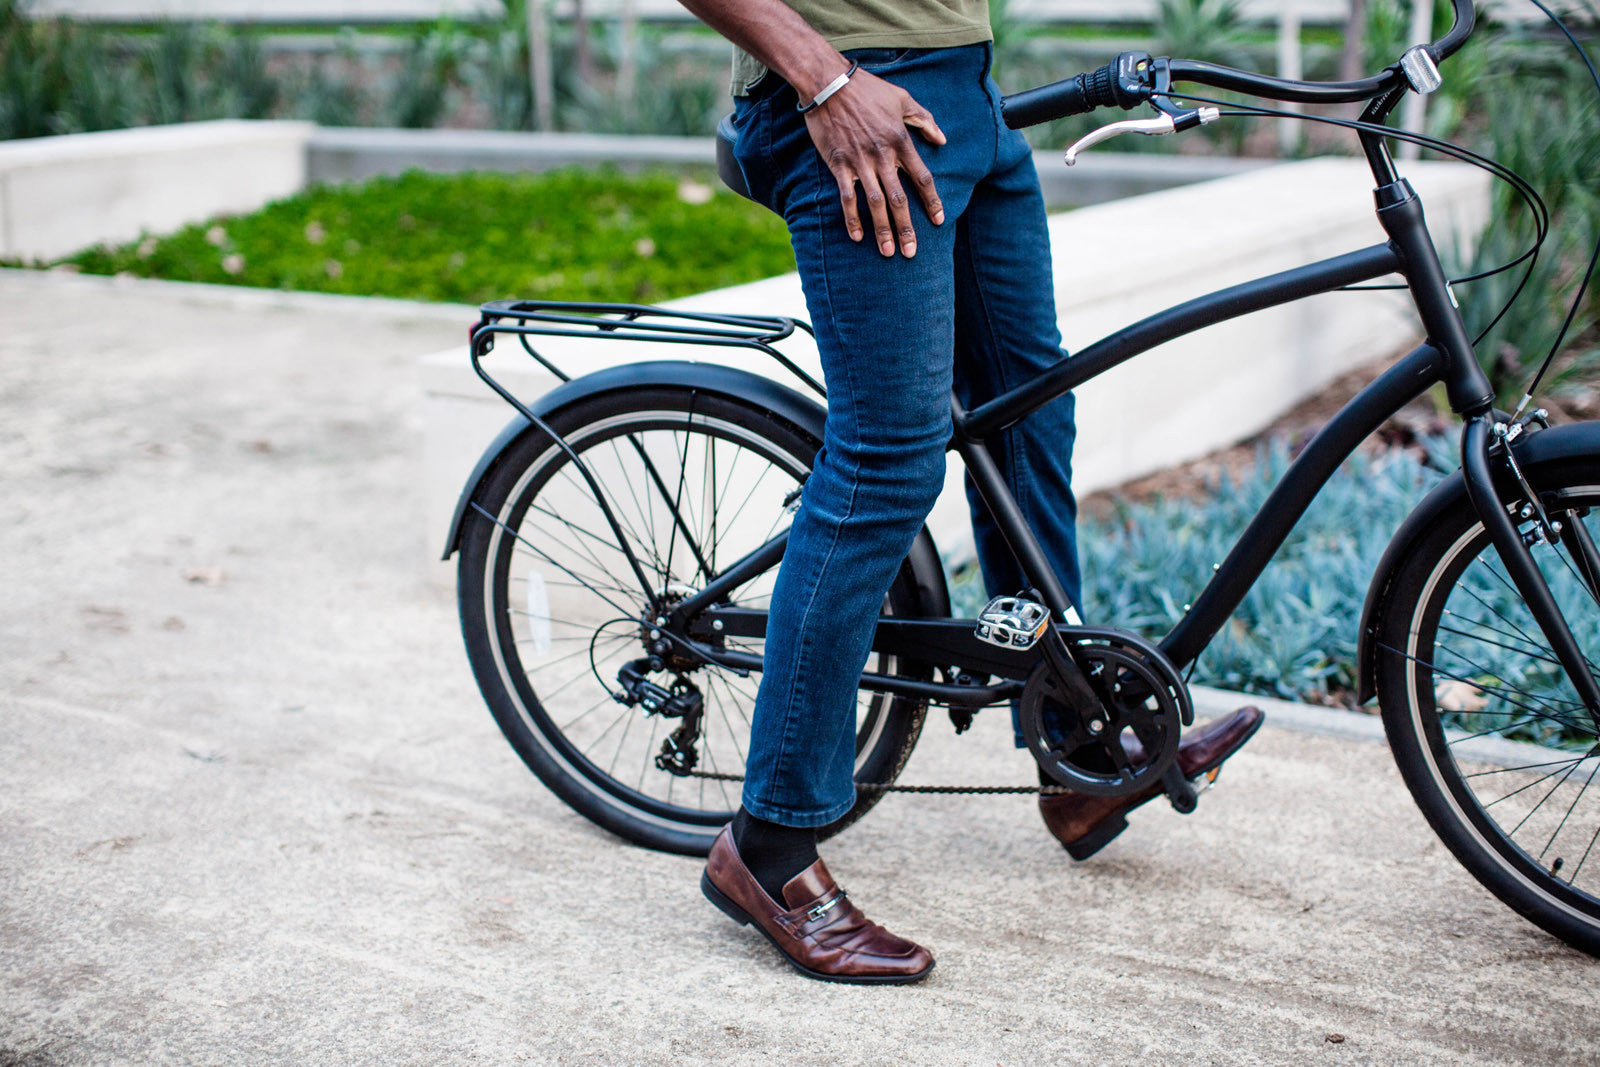 What is a Good Bike For Tall Riders?